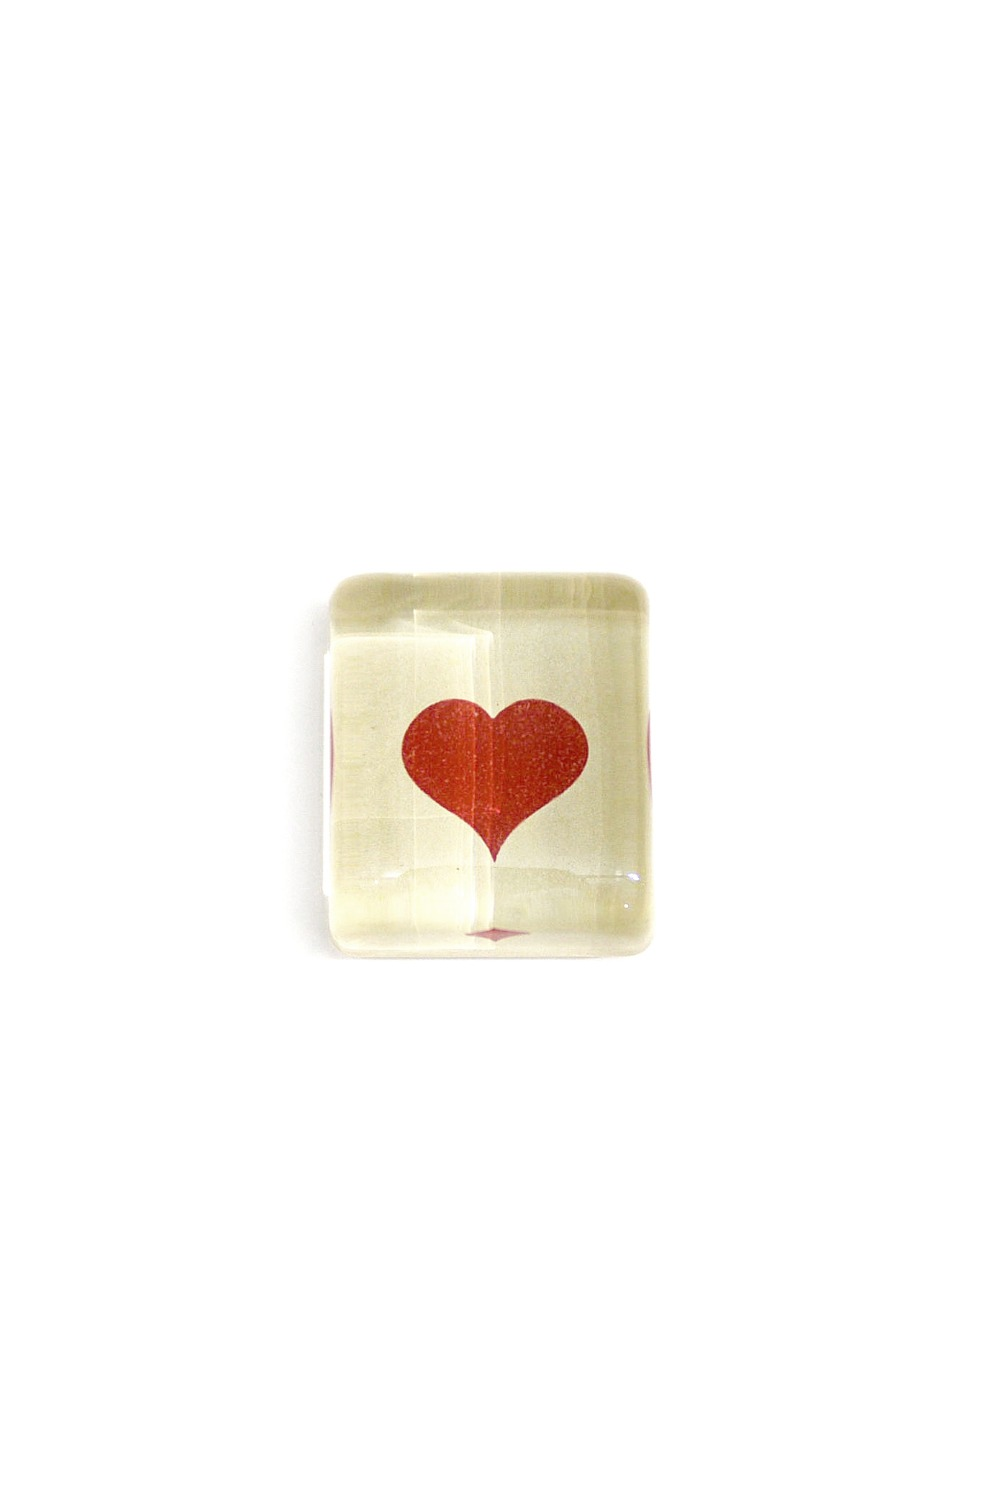 Rectangular Charm Paperweights - Blood Red Heart